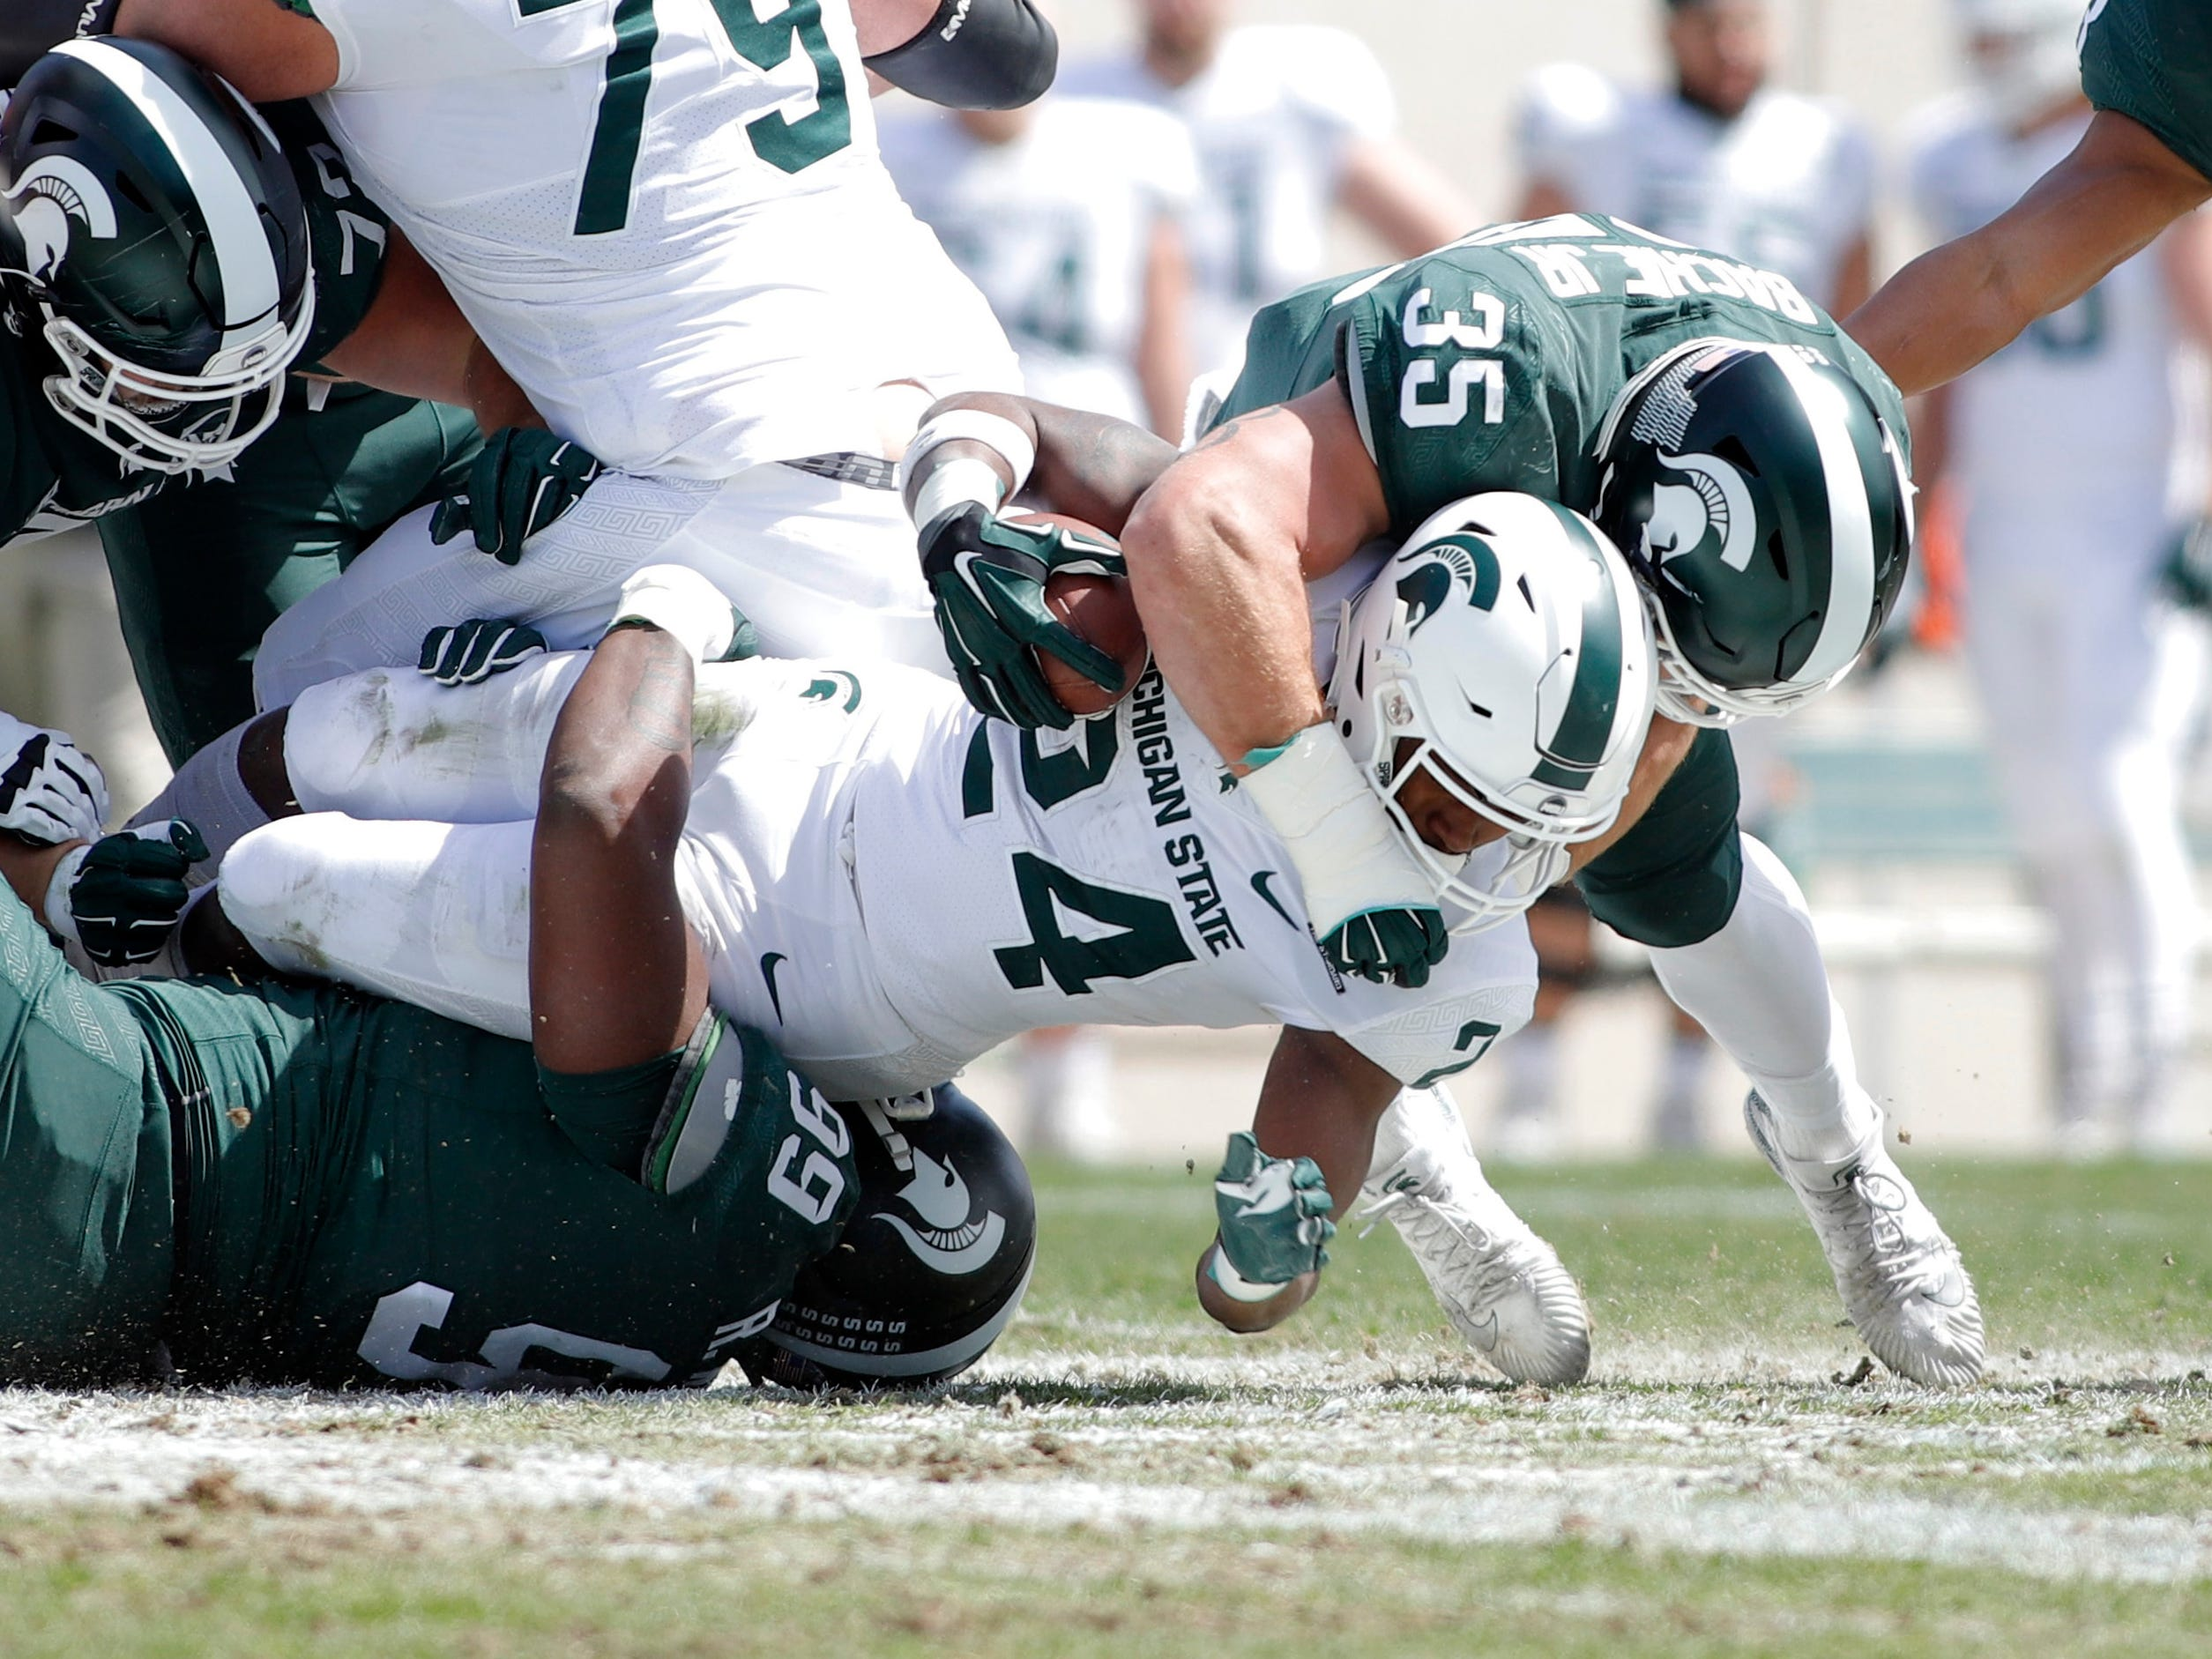 Michigan State's Joe Bachie, right, and Raequan Williams, bottom, tackle Elijah Collins during a spring scrimmage Saturday, April 13, 2019, in East Lansing.